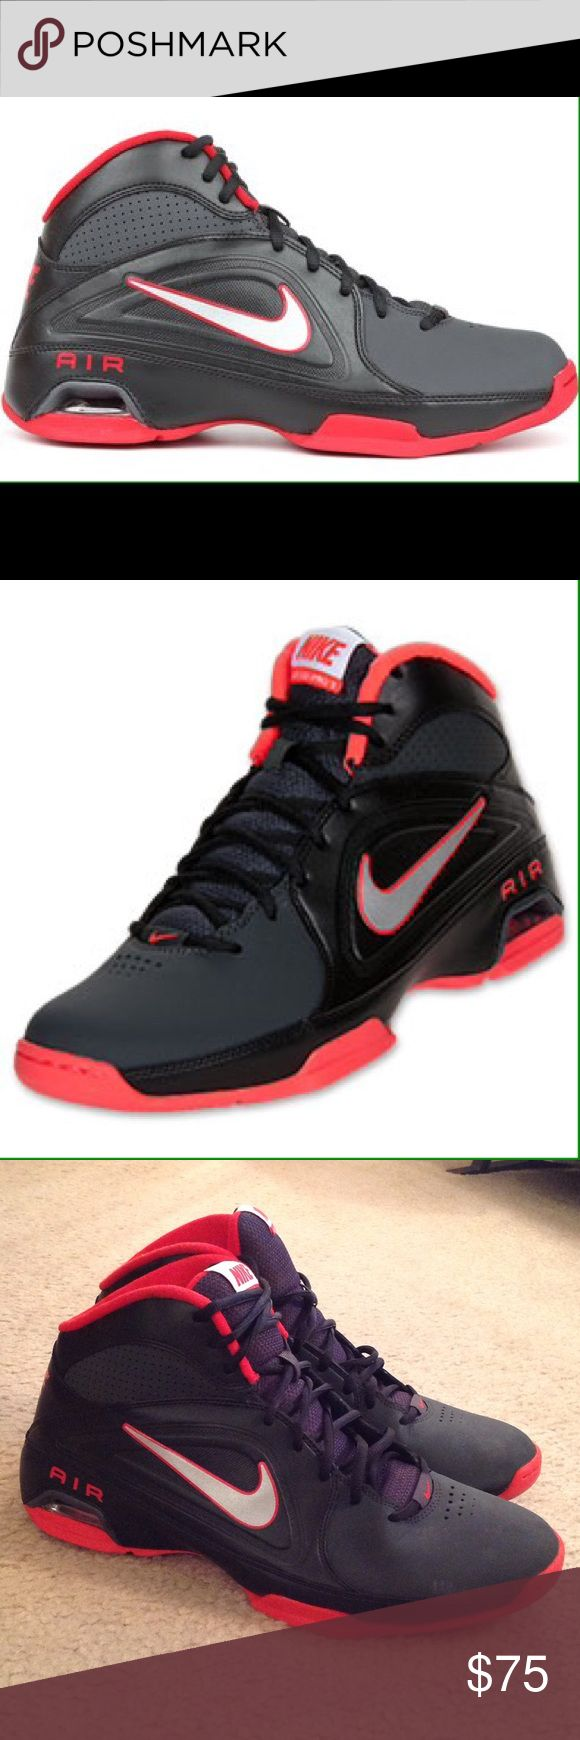 ☄️Nike Air - Visi Pro 111 - 'Swoosh' Shoes Excellent / New Condition. Nike Air Visi Pro 3, only worn once!!  For ballers with a need for speed!!  Size 11. Black/Red/Silver Color. Red Soles. See All Pictures please. Next day Shipping ☄️ Nike Shoes Athletic Shoes